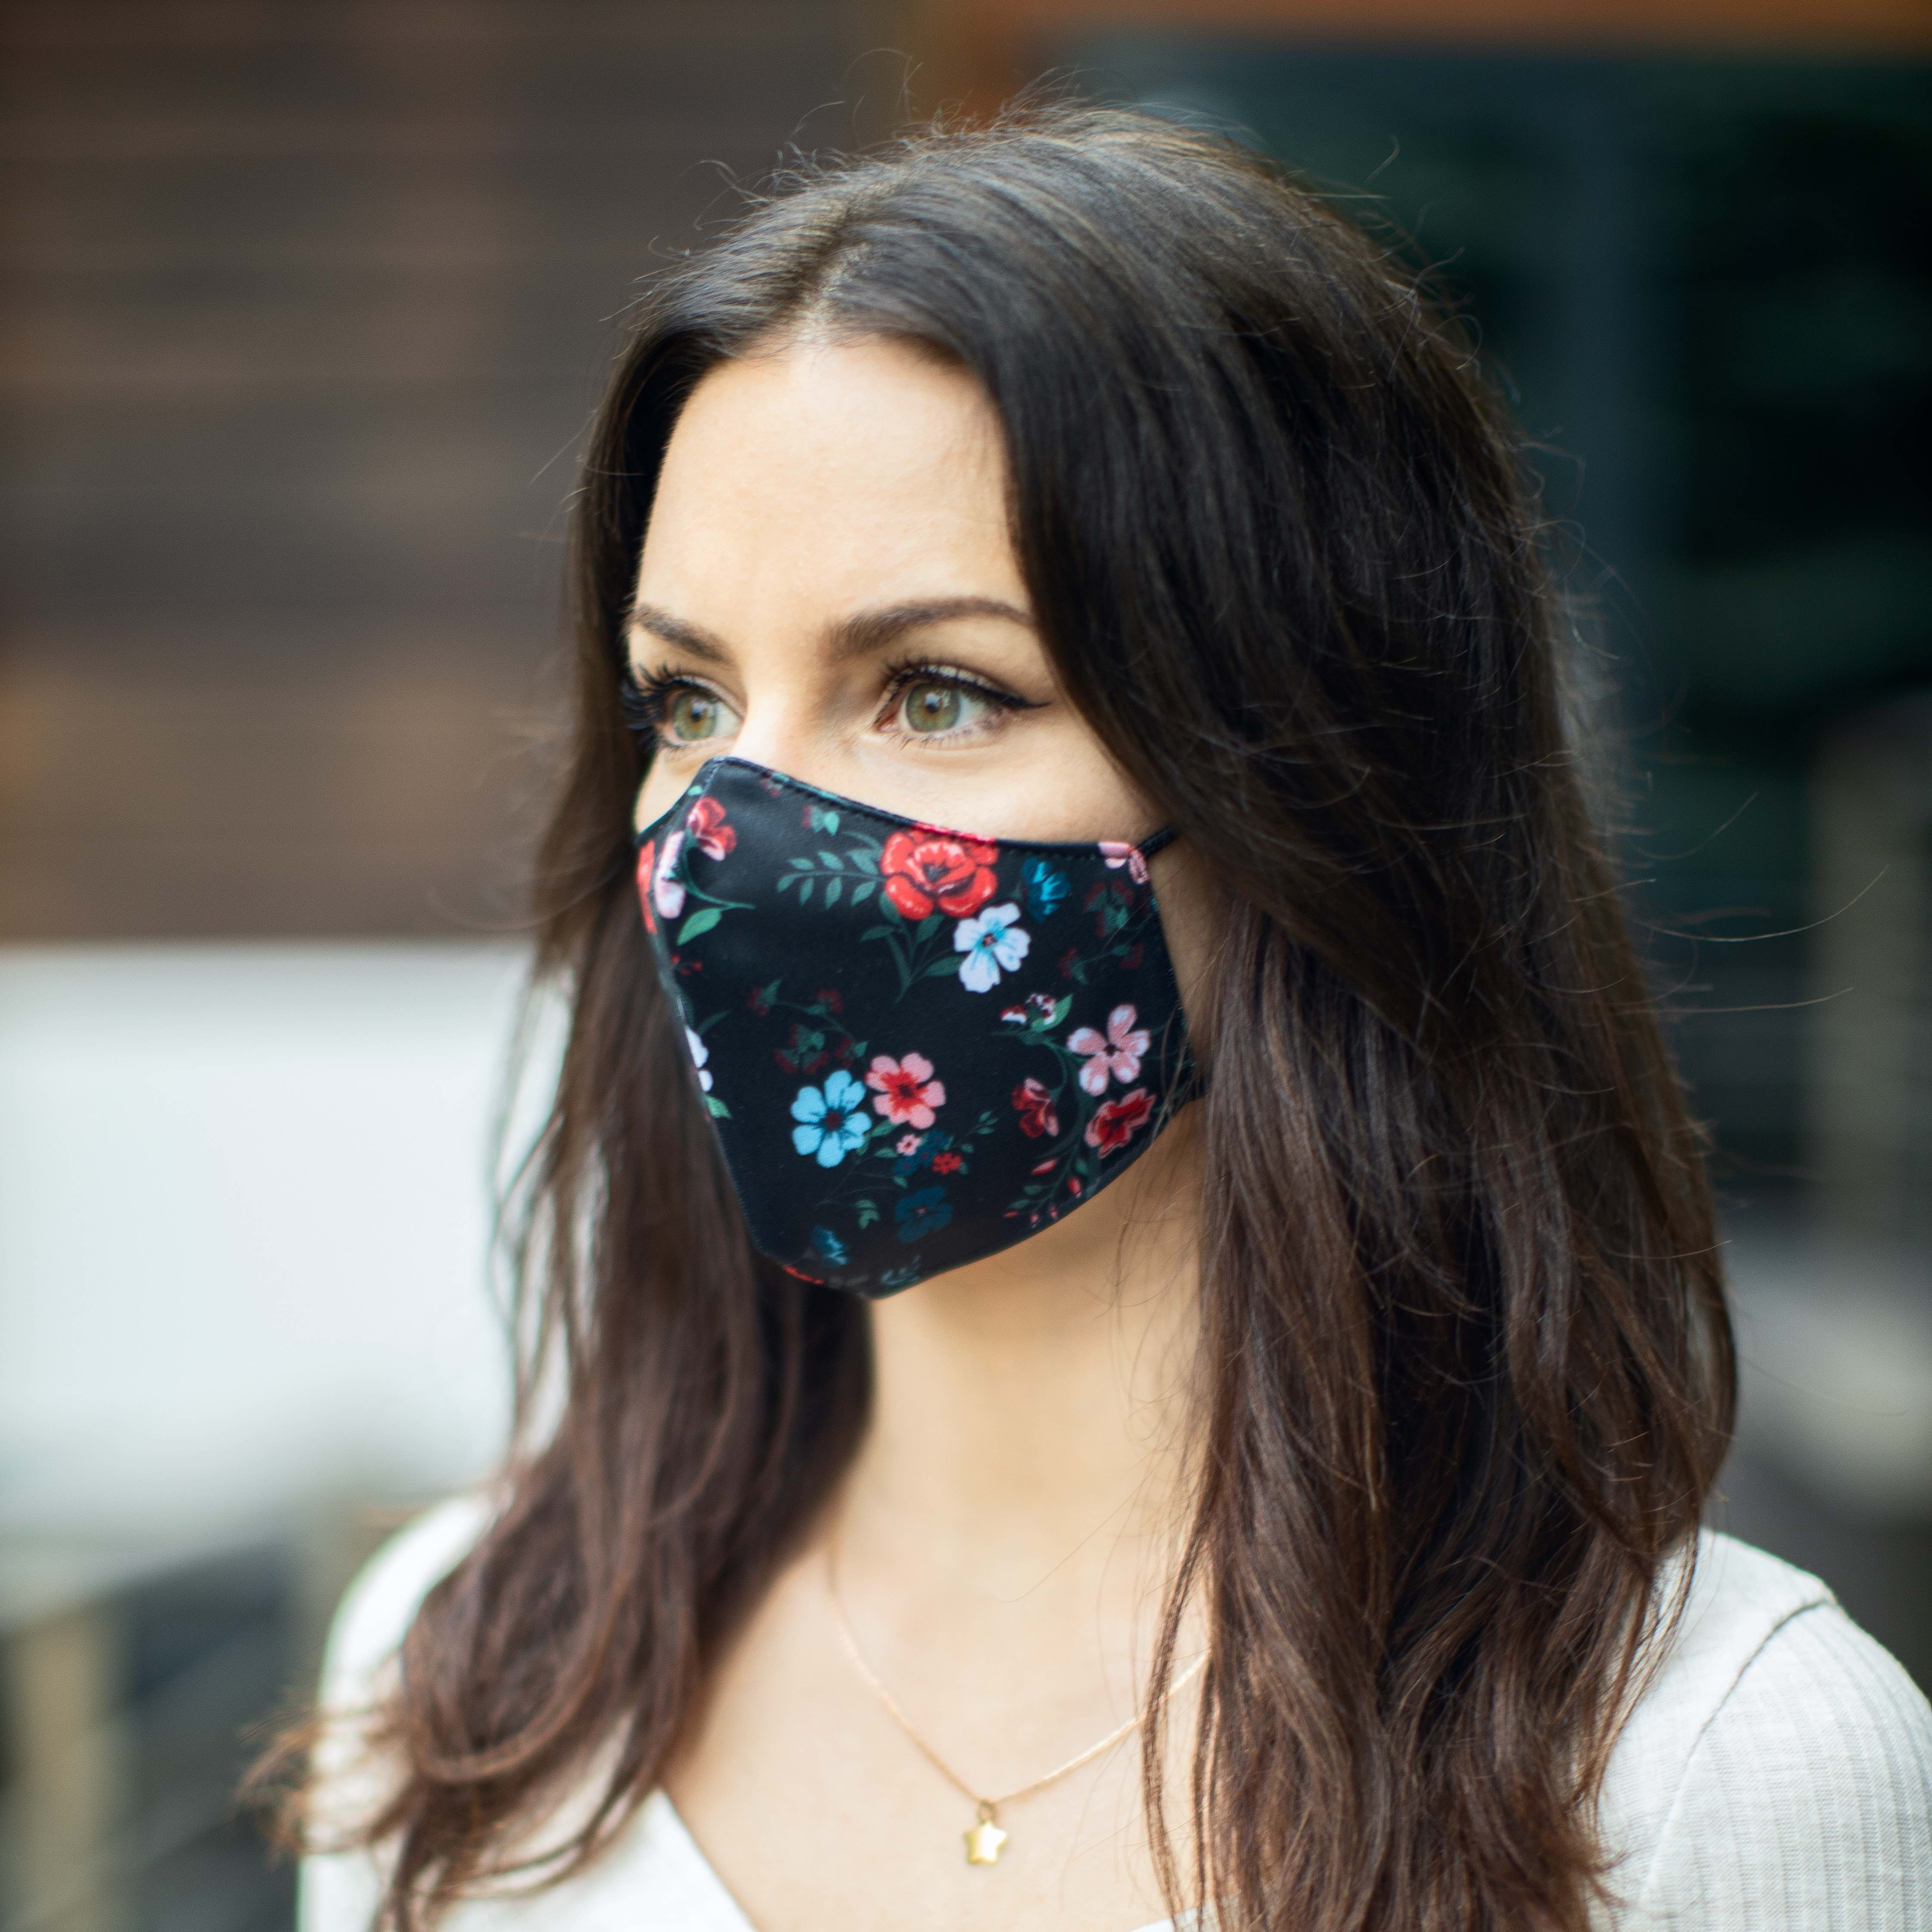 Care & More L2 LUX reusable personalized face mask